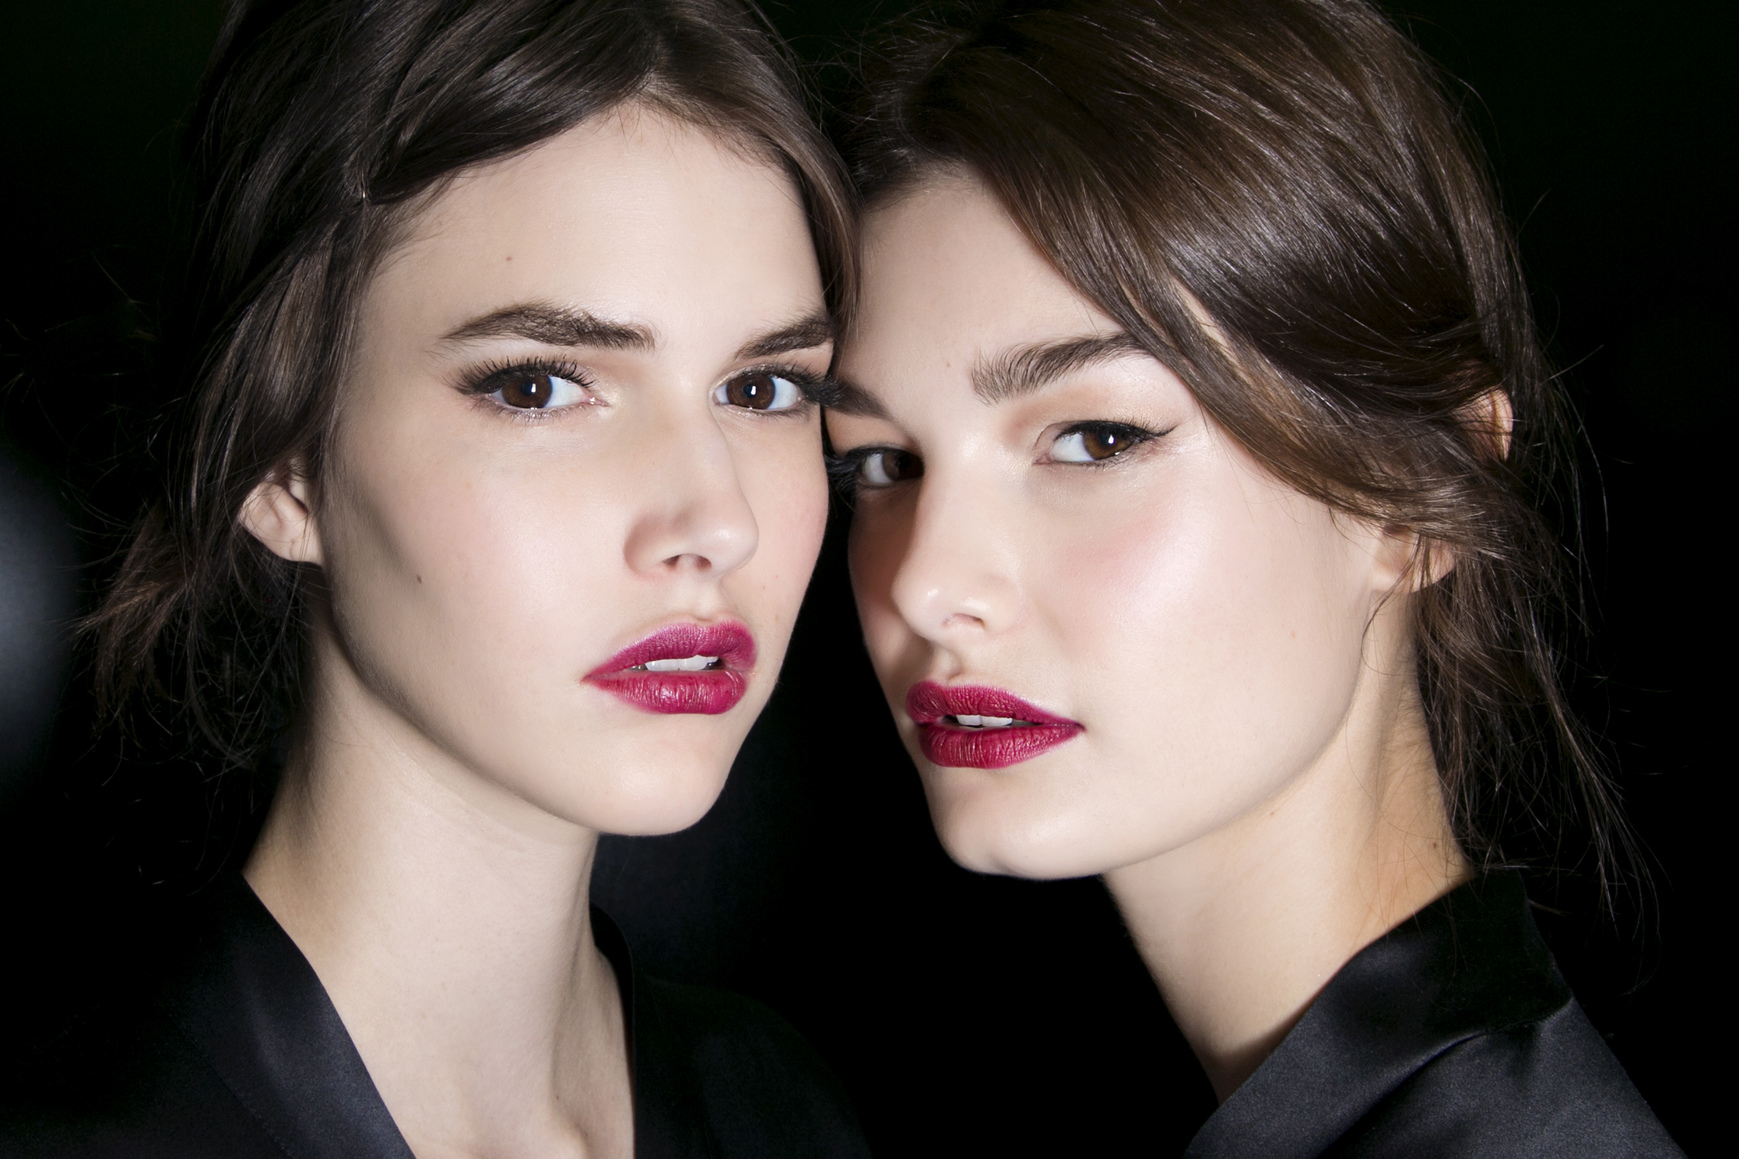 The 5 Best Kiss-Proof Lipsticks, According to the Internet